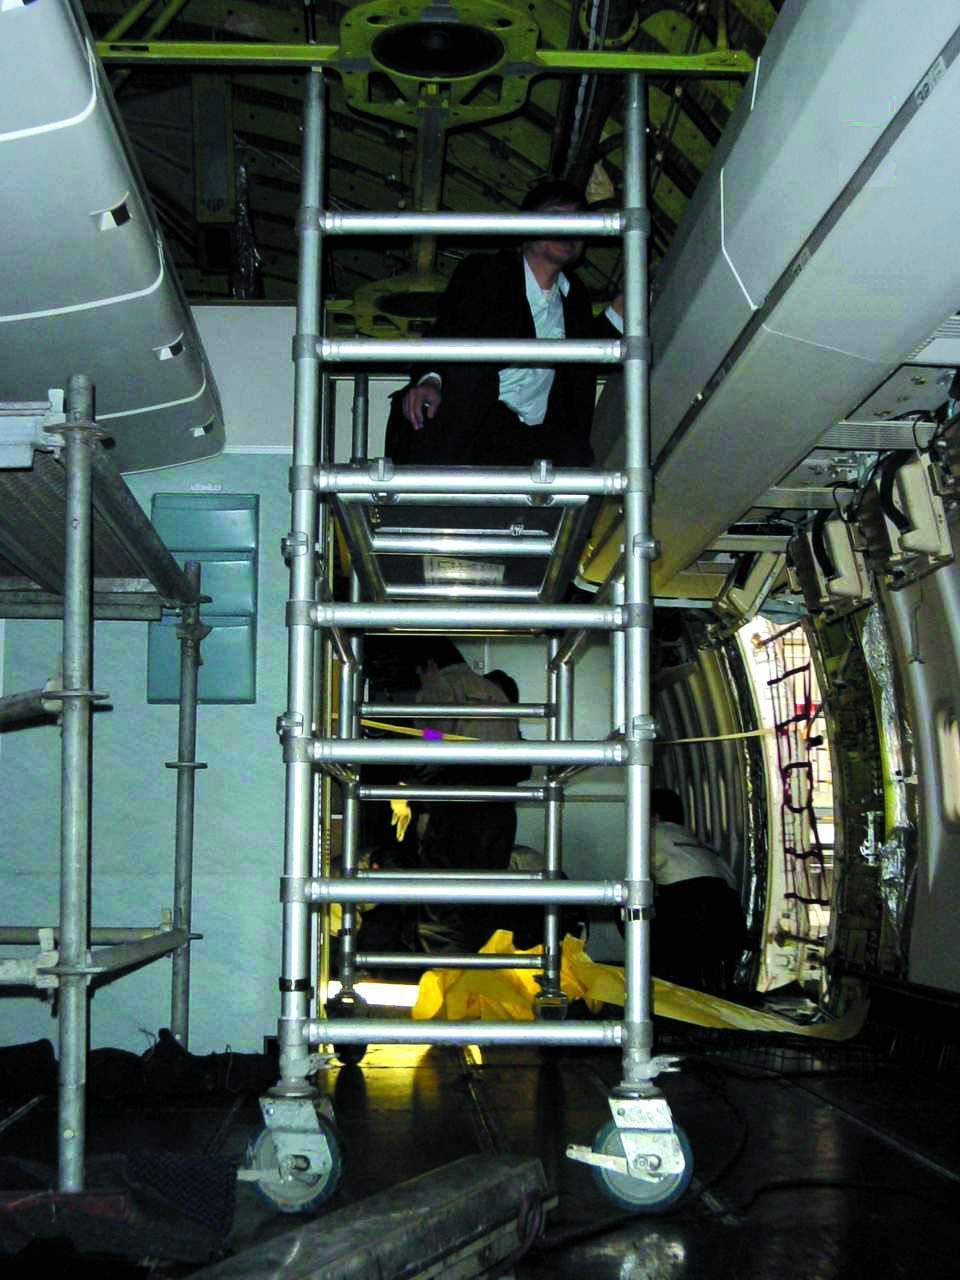 aircraft system and aircraft maintenance Ams, otherwise known as aircraft maintenance systems developed and works as an innovative hub for aerospace repairs and engineering the aerospace industry is one of the largest and most technologically advanced endeavors on the face of the earth.